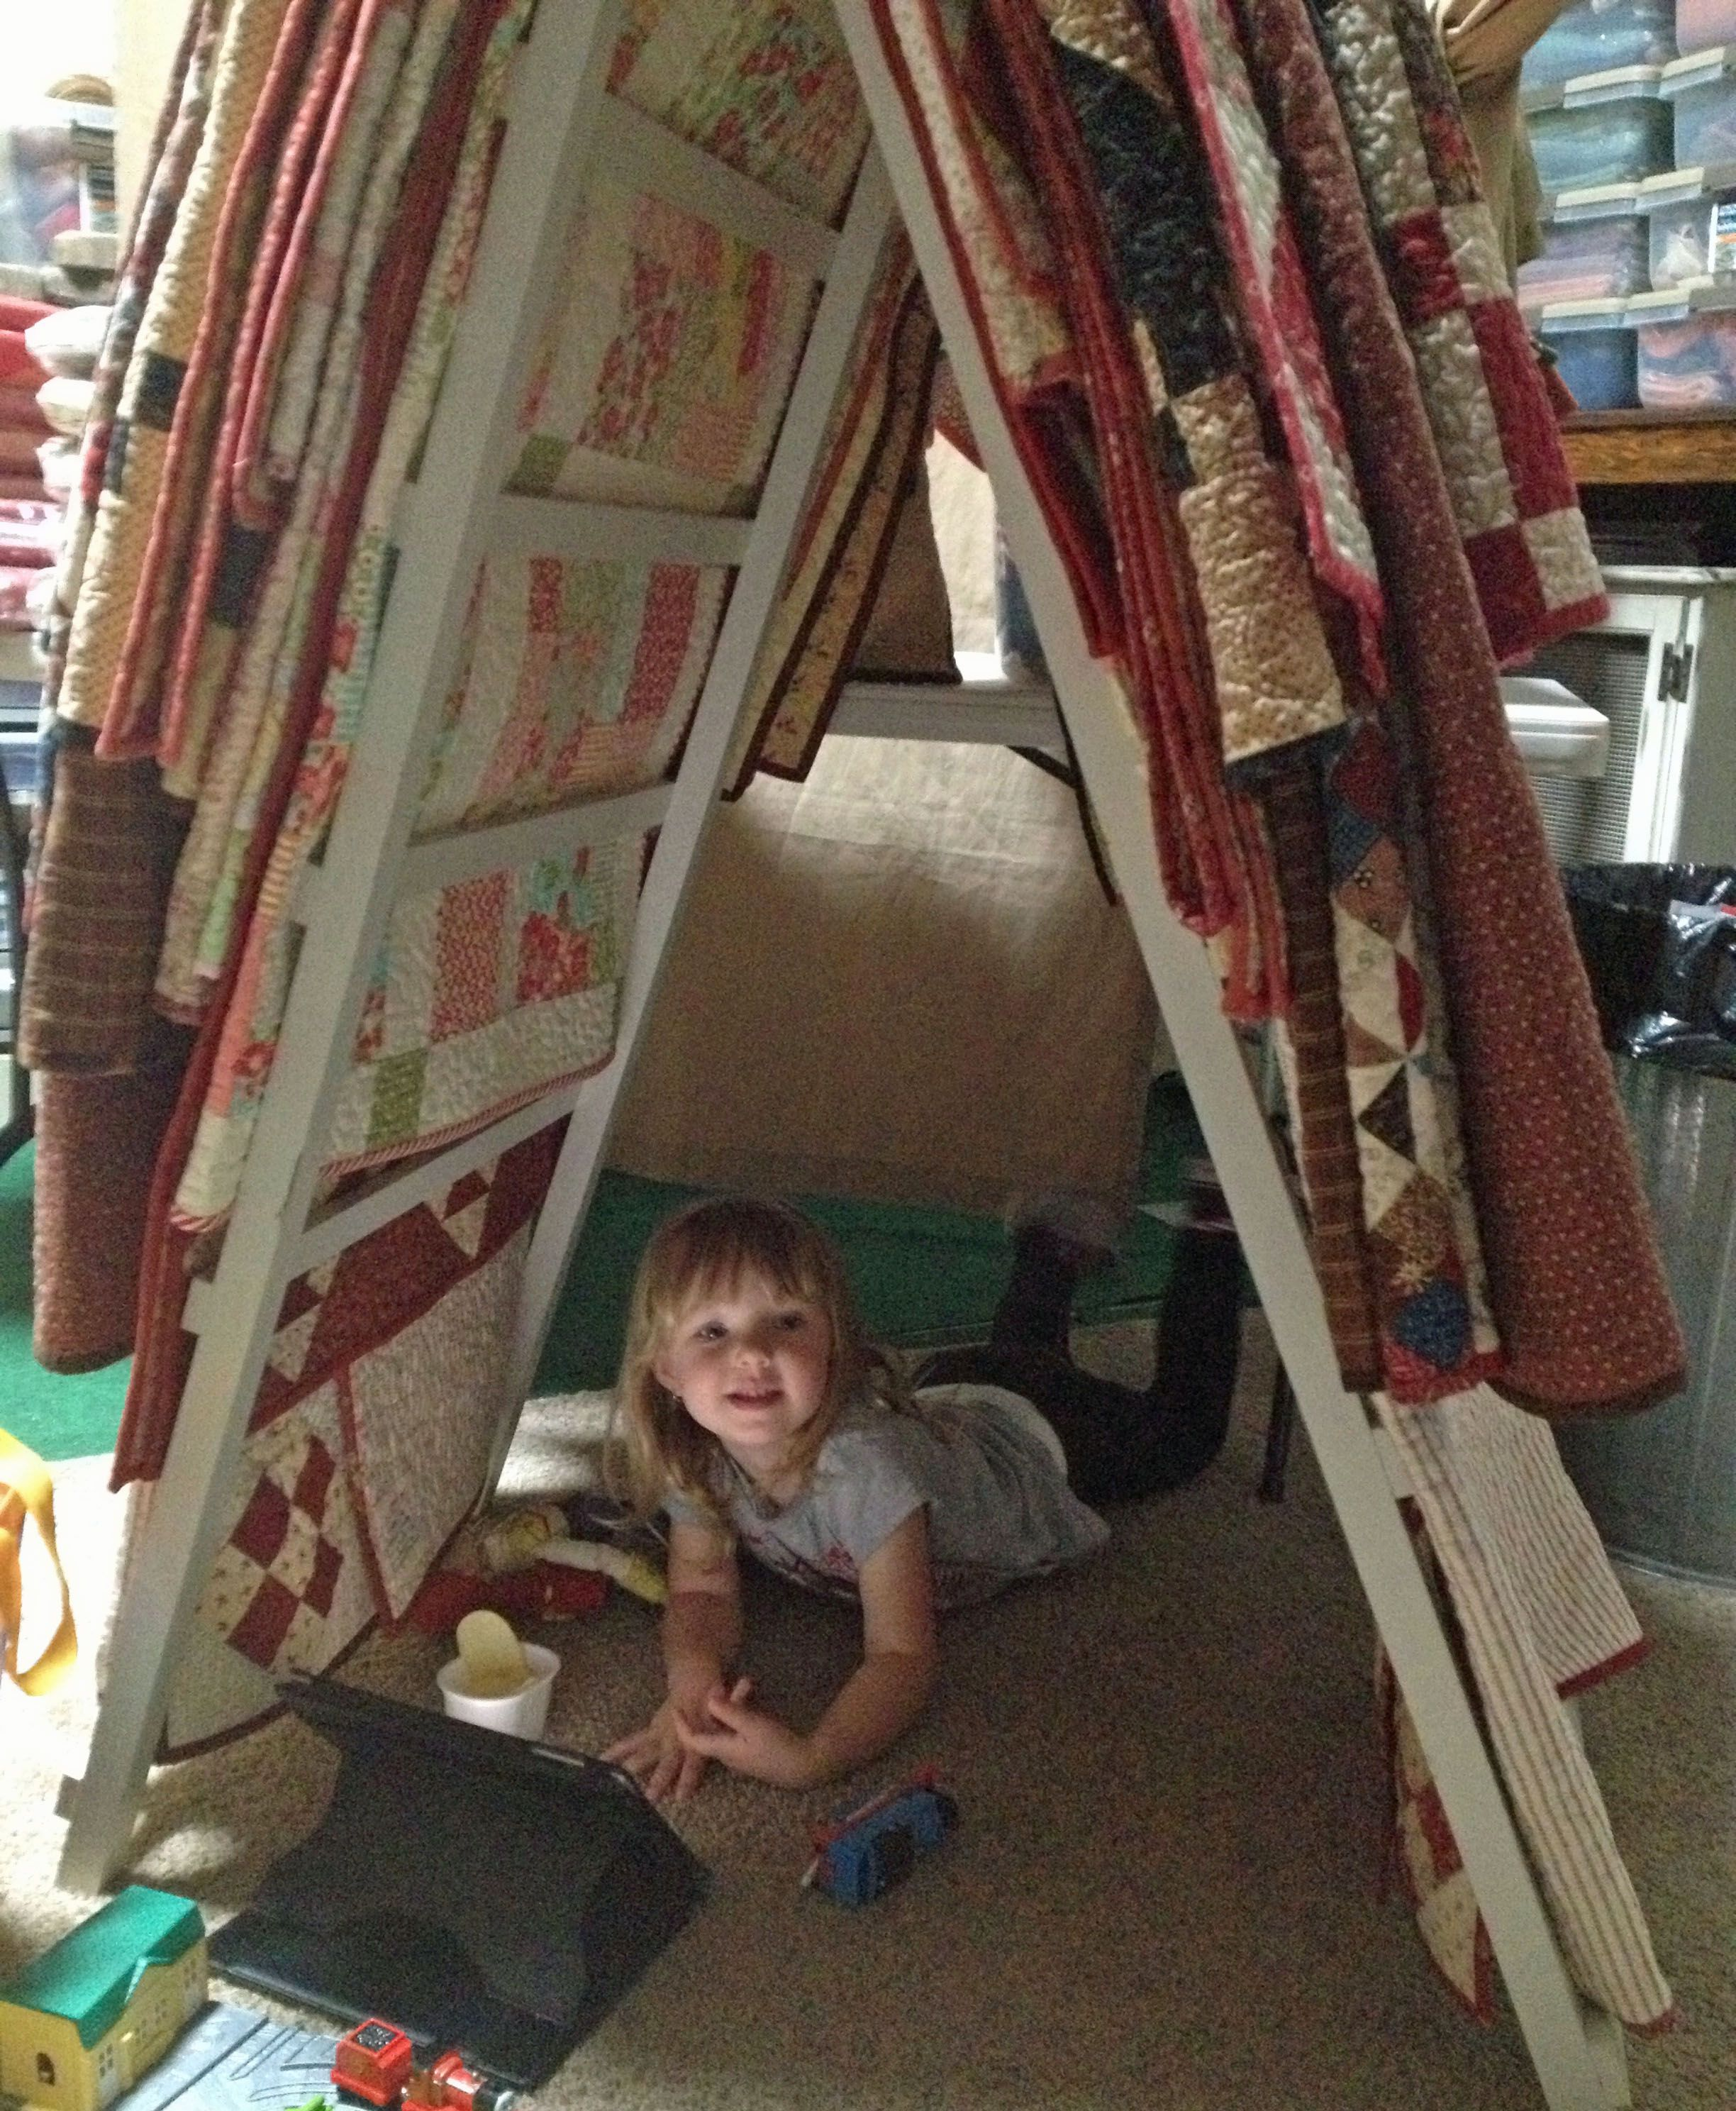 Addy's helping get the quilts ready for the warehouse sale! http://myreddoordesignsblog.blogspot.com